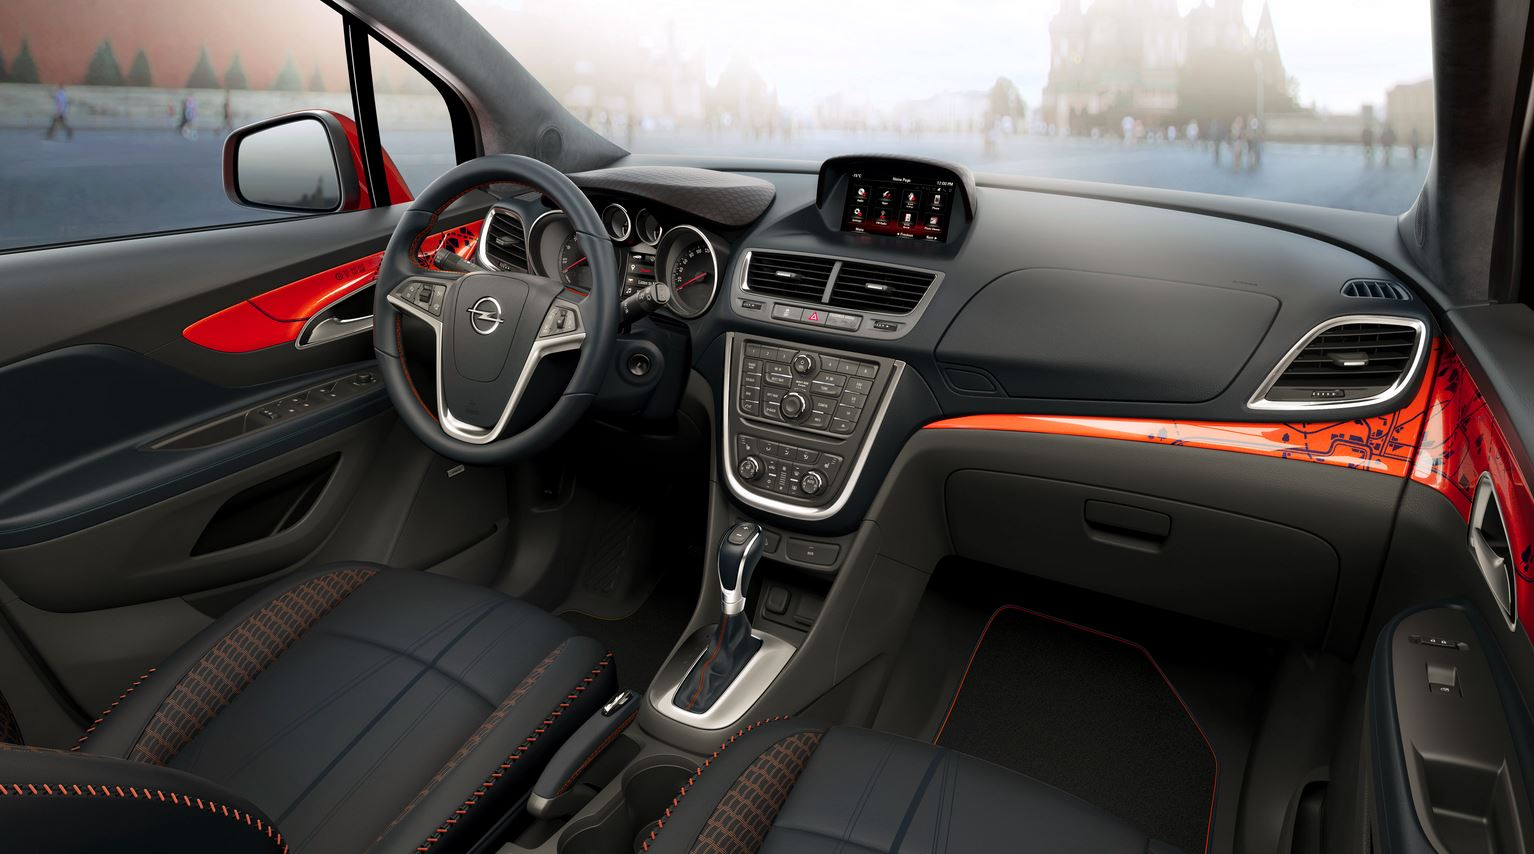 2015 opel mokka moscow edition unwrapped motor exclusive. Black Bedroom Furniture Sets. Home Design Ideas